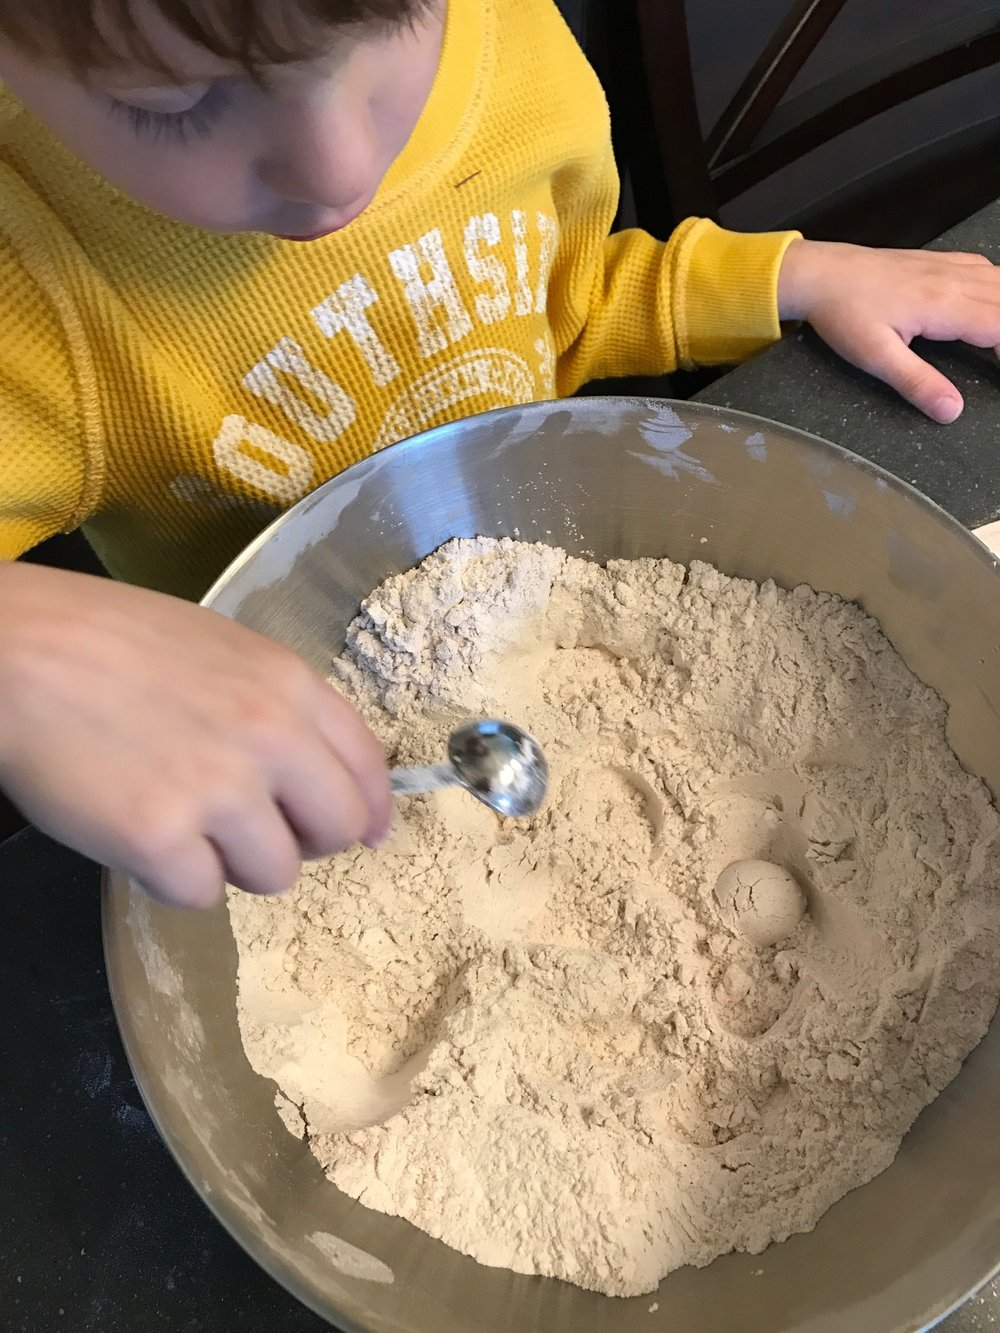 My little helper mixing the dry ingredients.